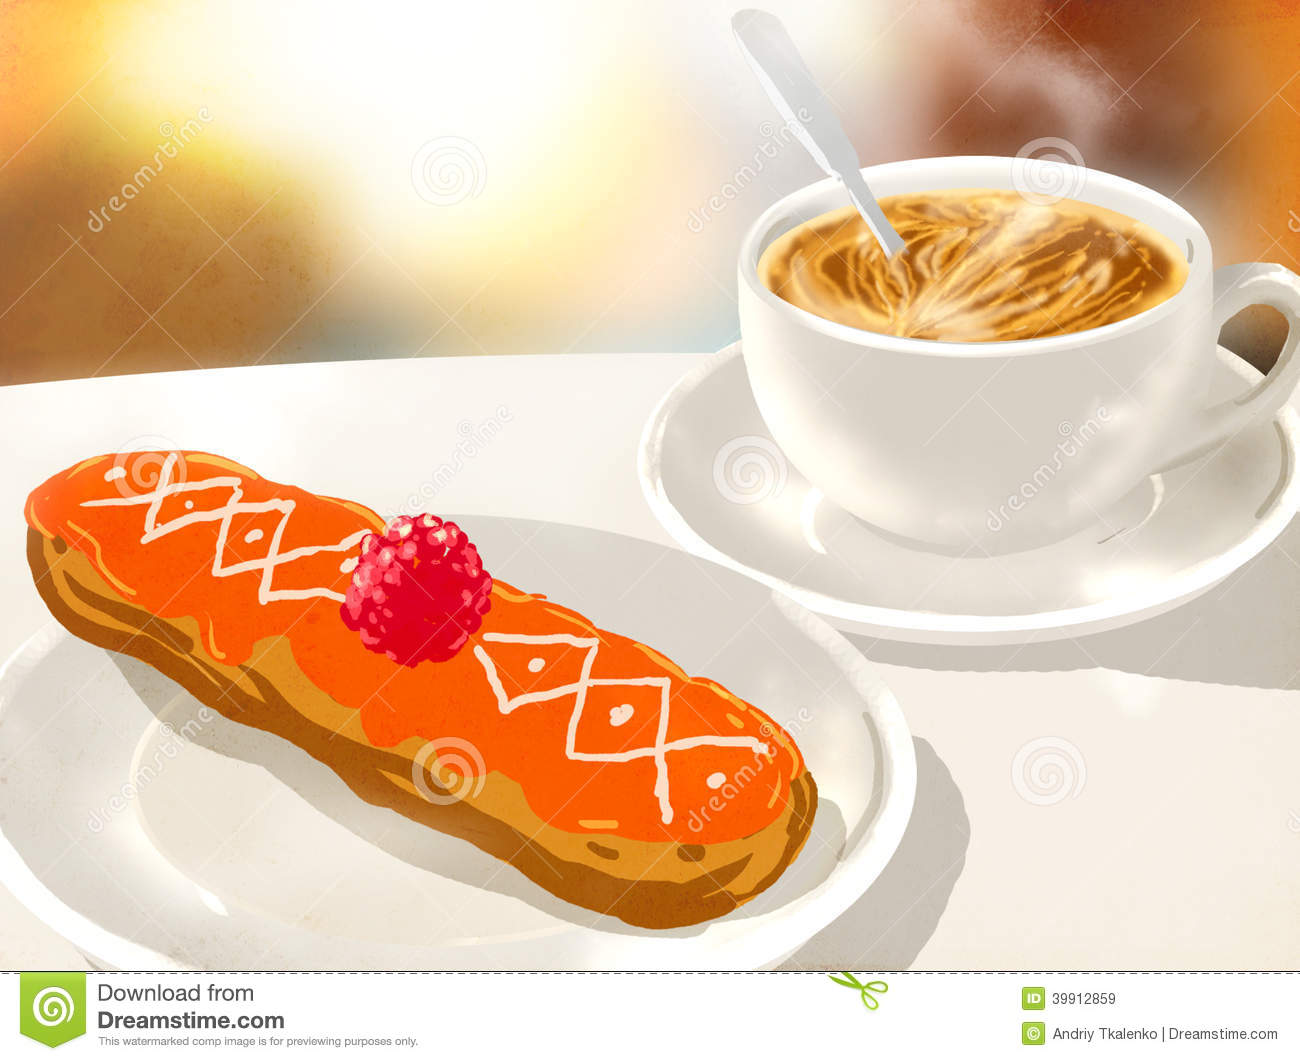 Cappuccino Cup And Eclairs Stock Illustration - Image: 39912859